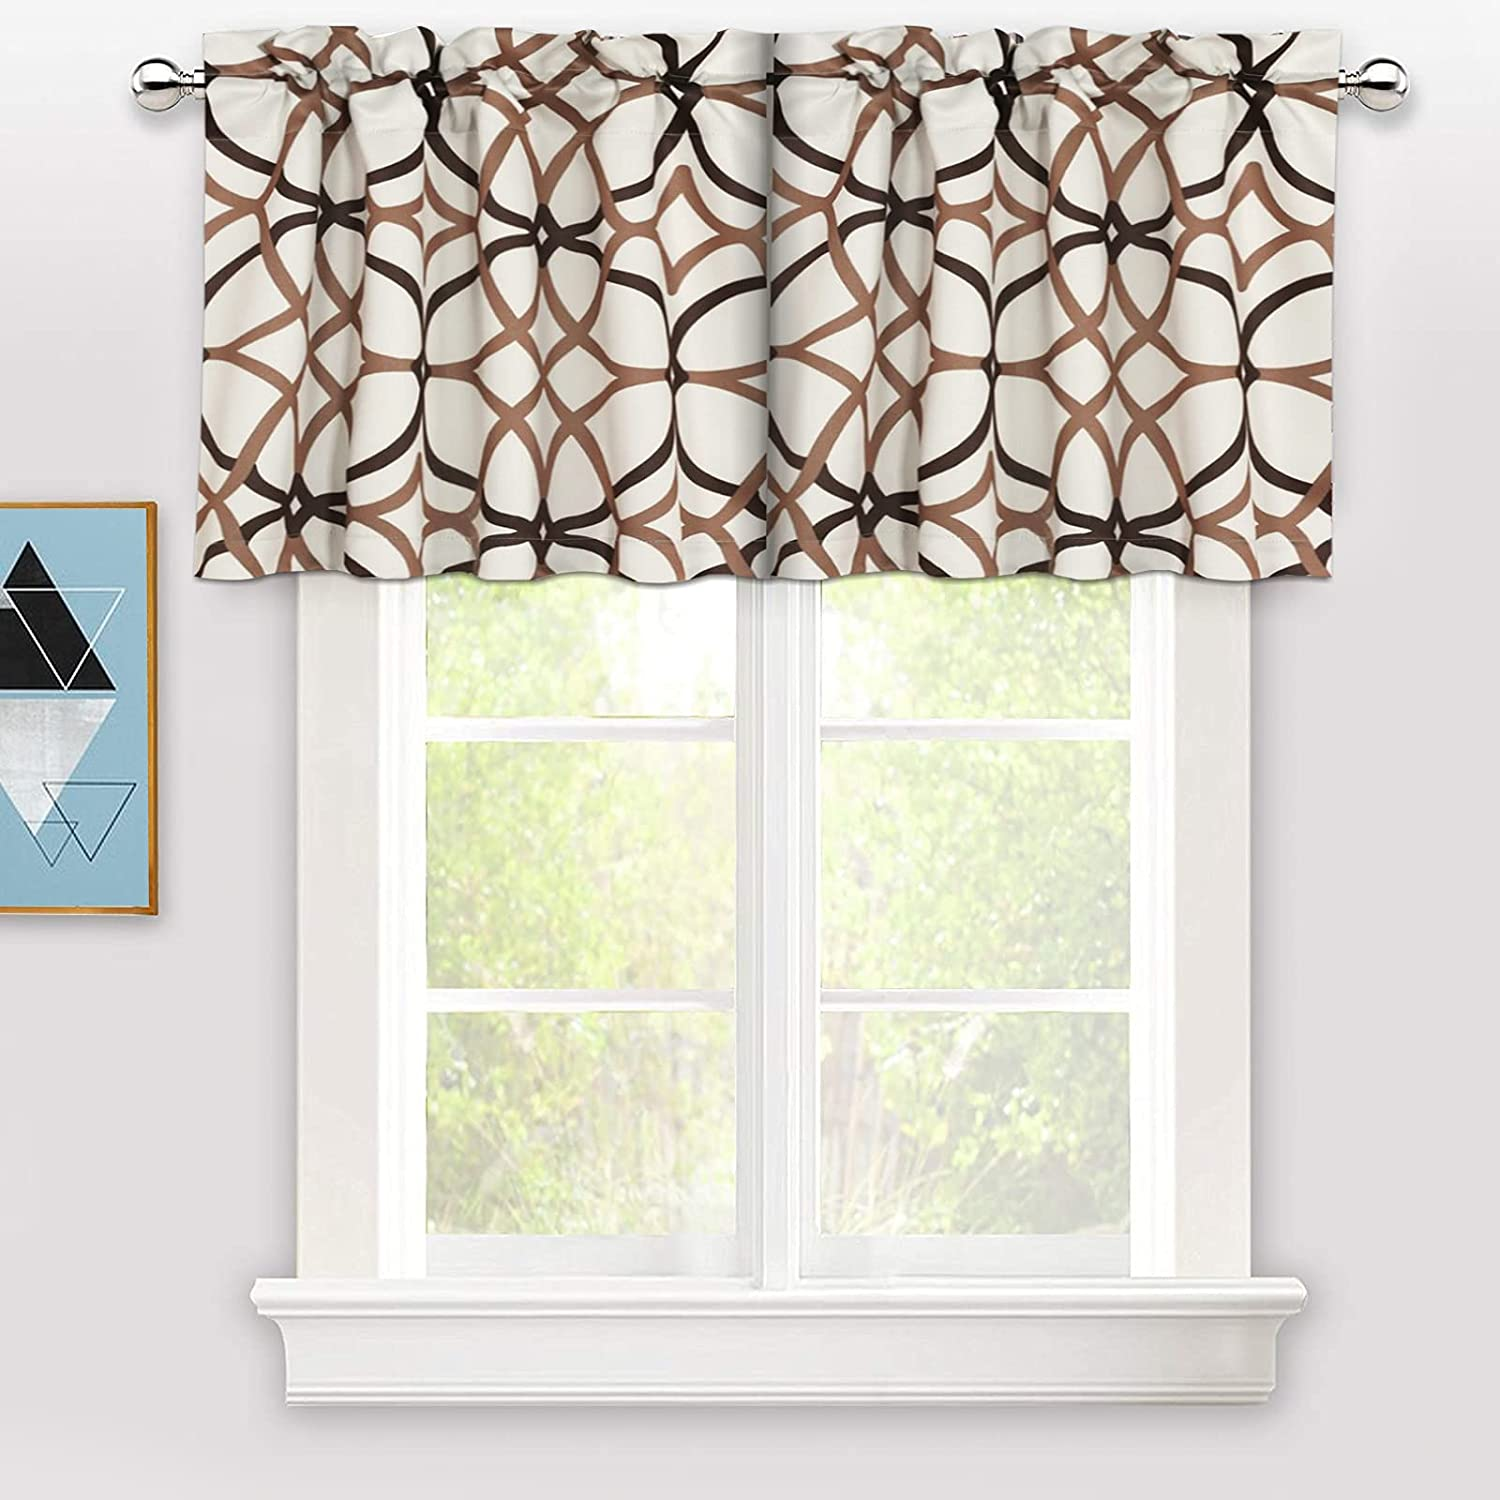 Indefinitely FUPAH Valance Curtains for Kitchen Blackout Clearance SALE Limited time f Valances - Curtain